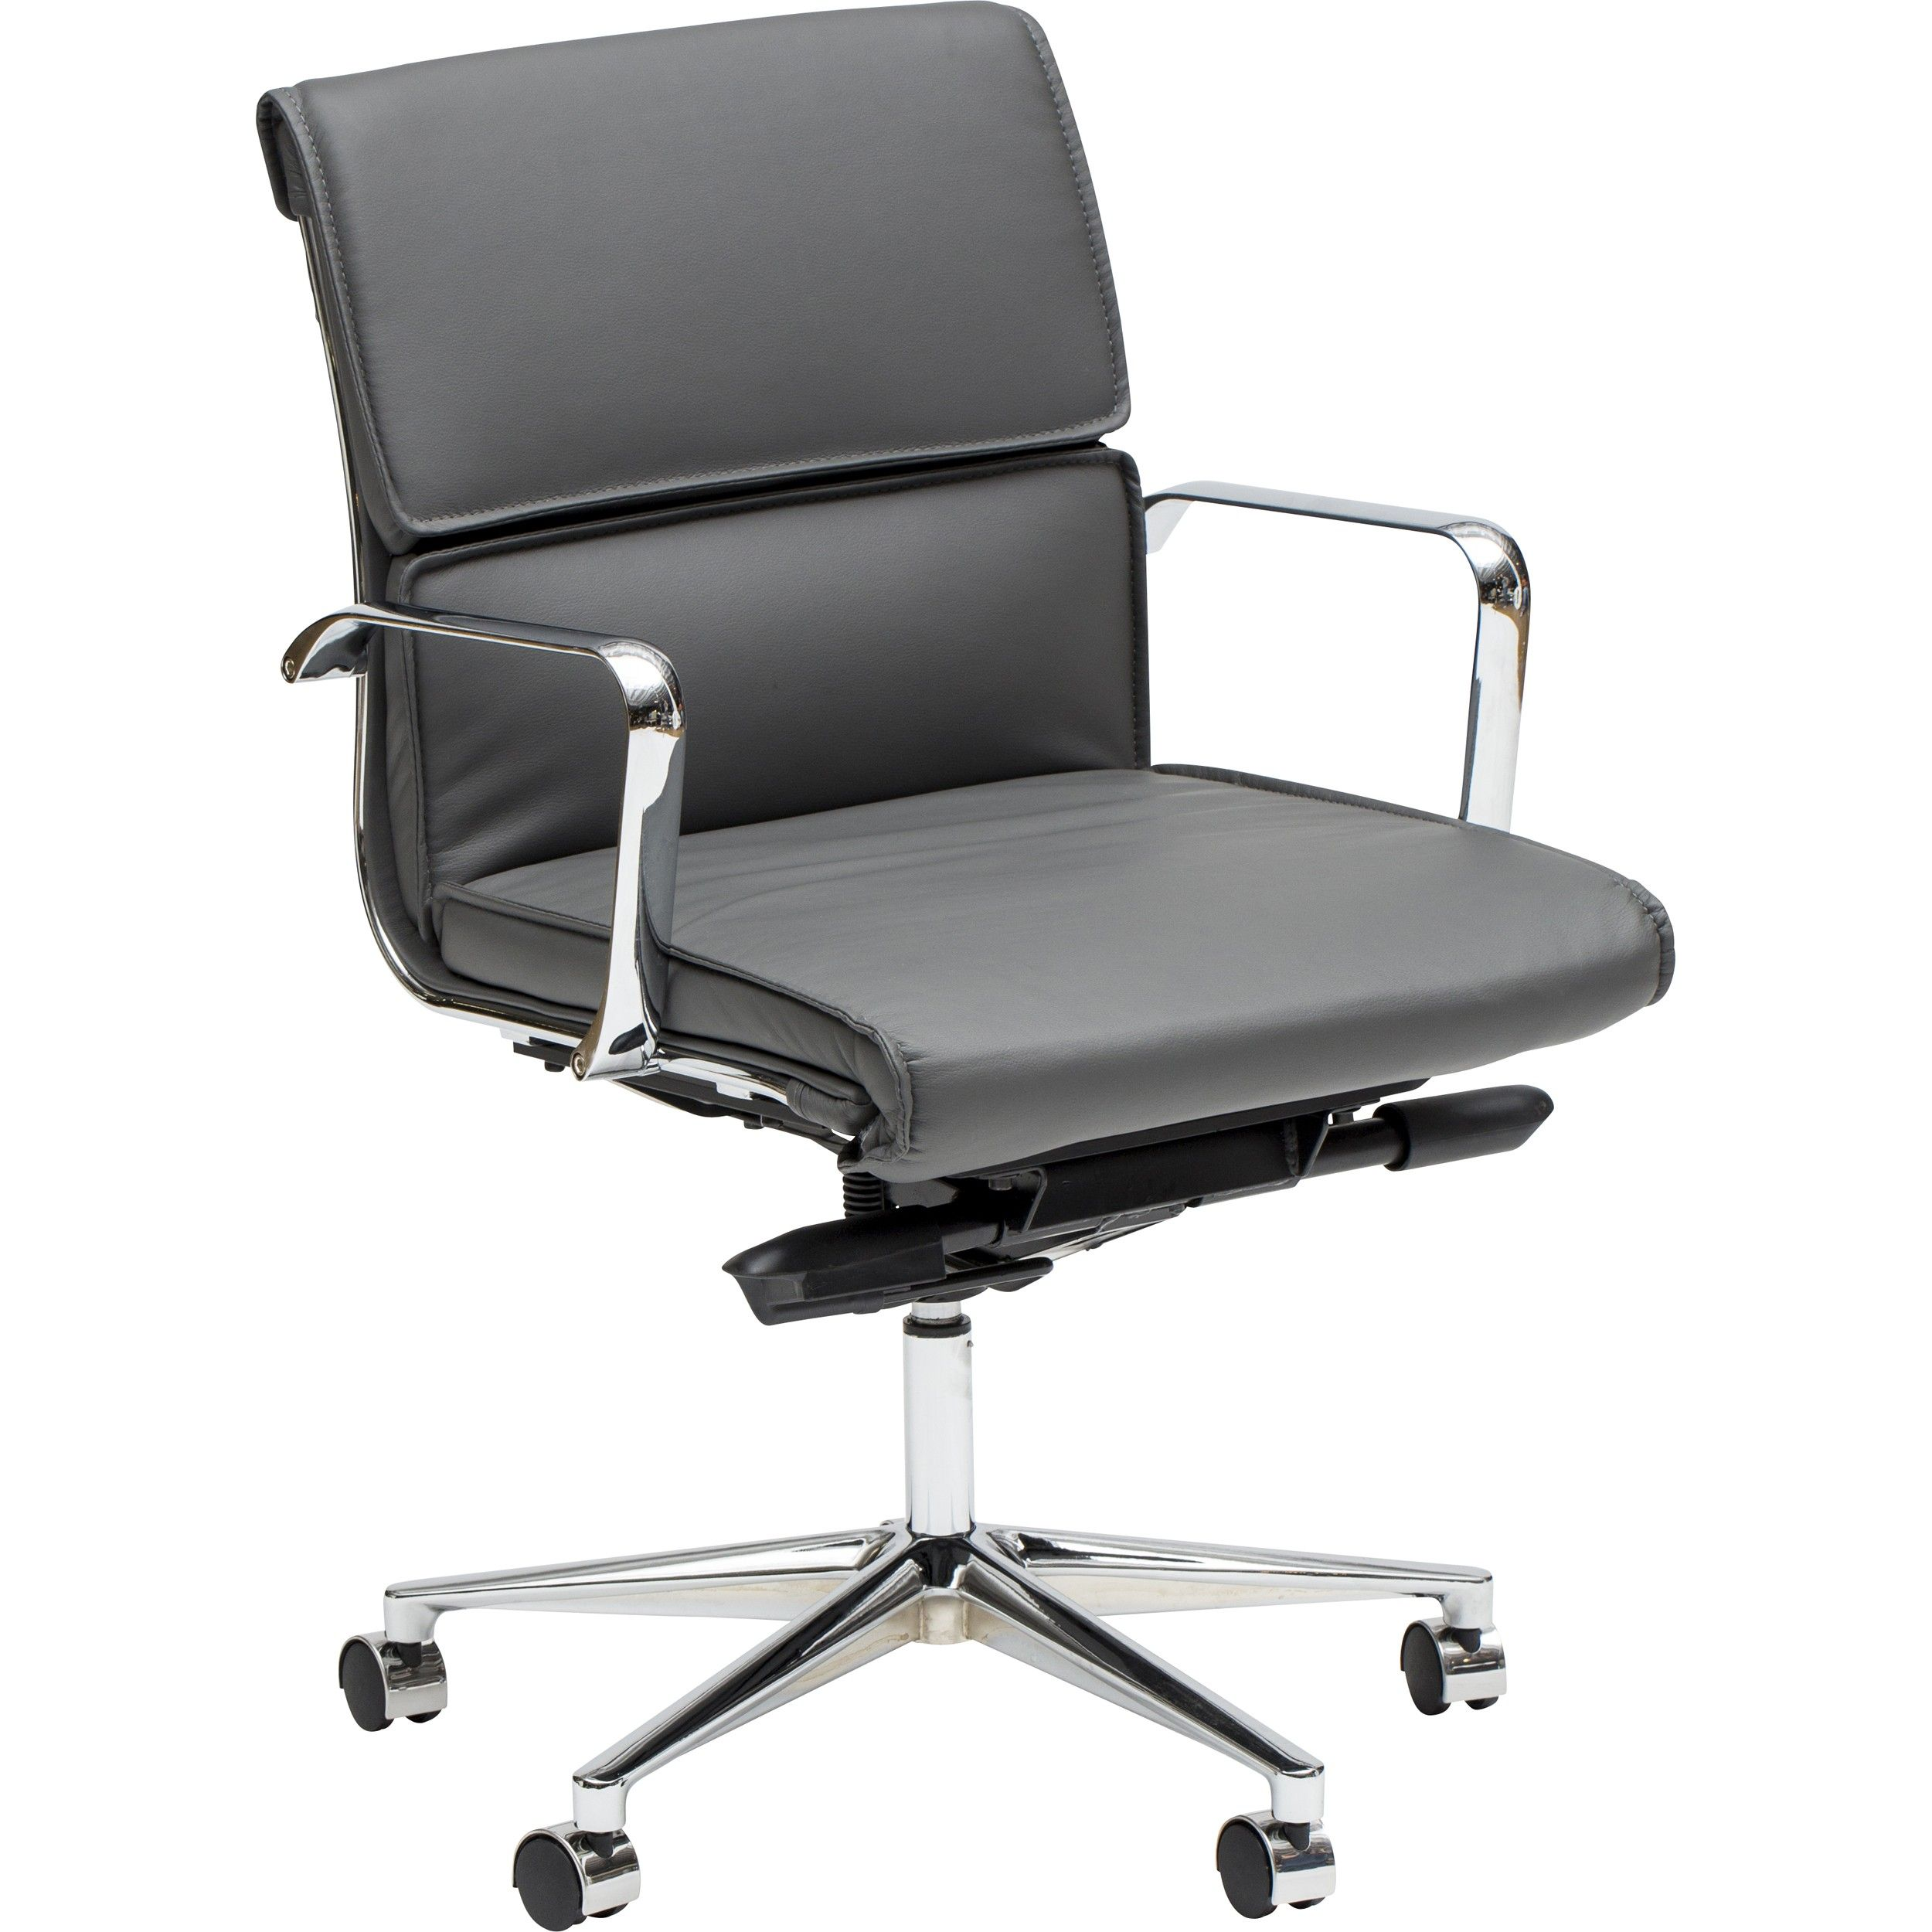 grey furniture chairs office chair jupiter